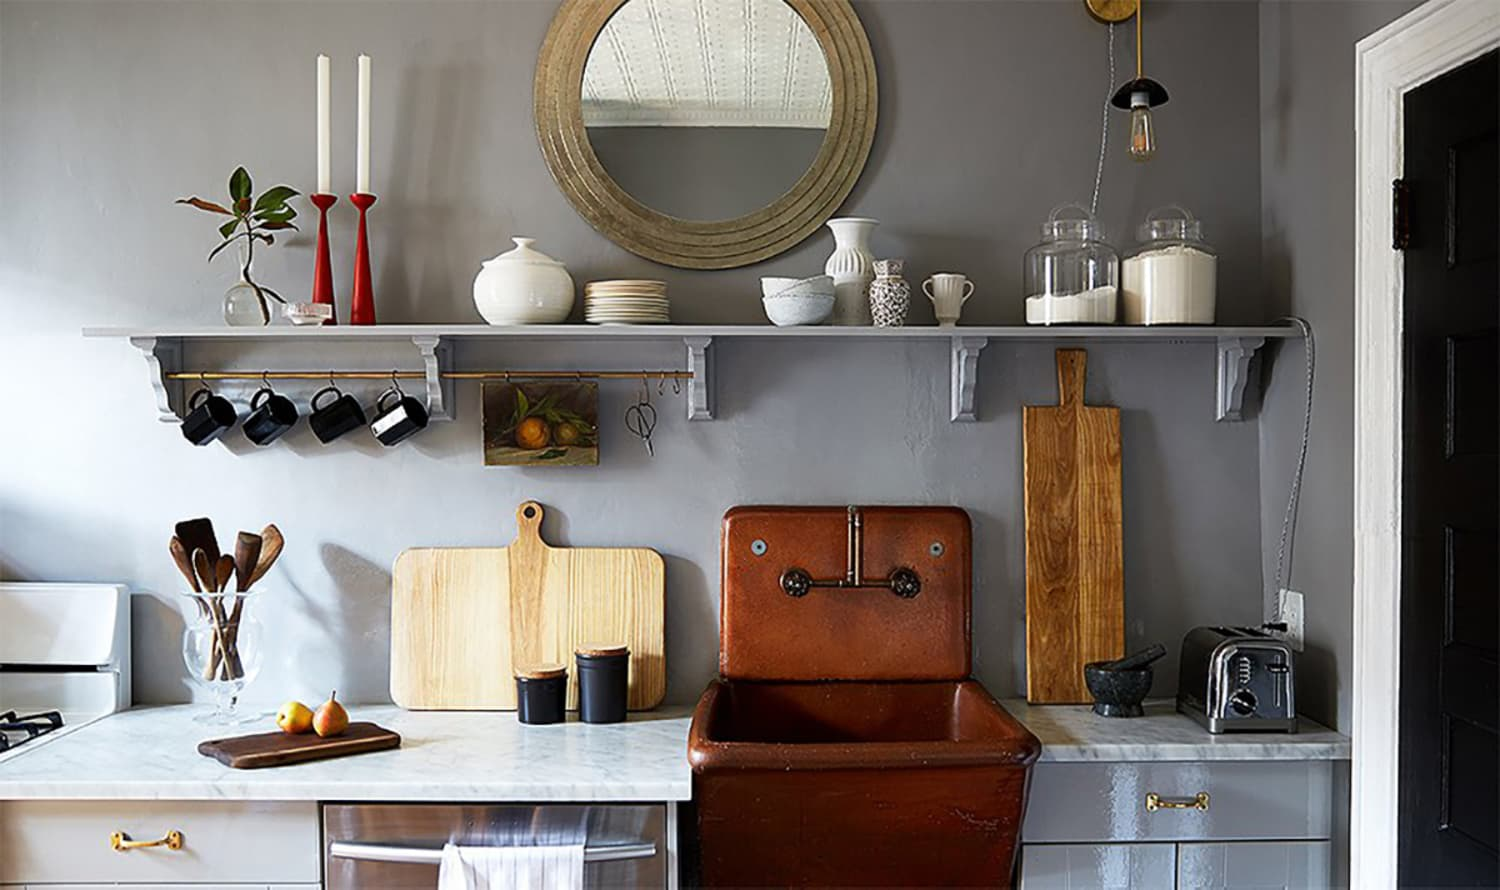 5 Totally-on-Trend Kitchen Styles